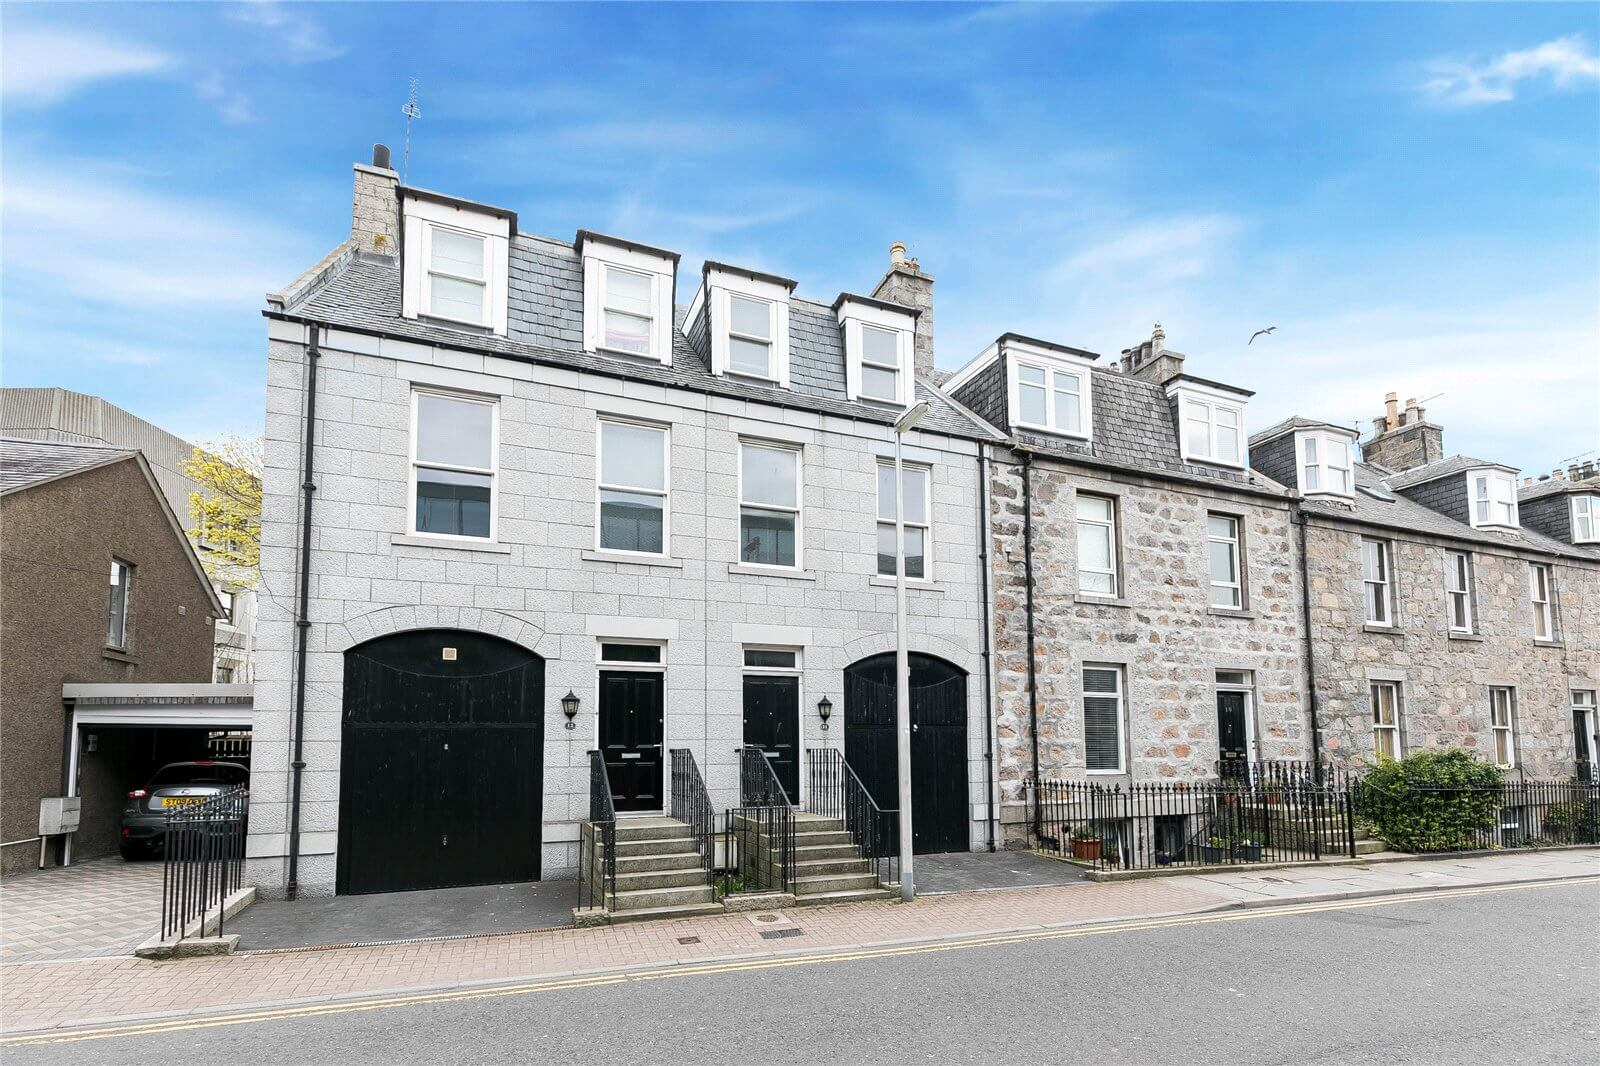 Our latest properties for sale and to let (18th April 2019)